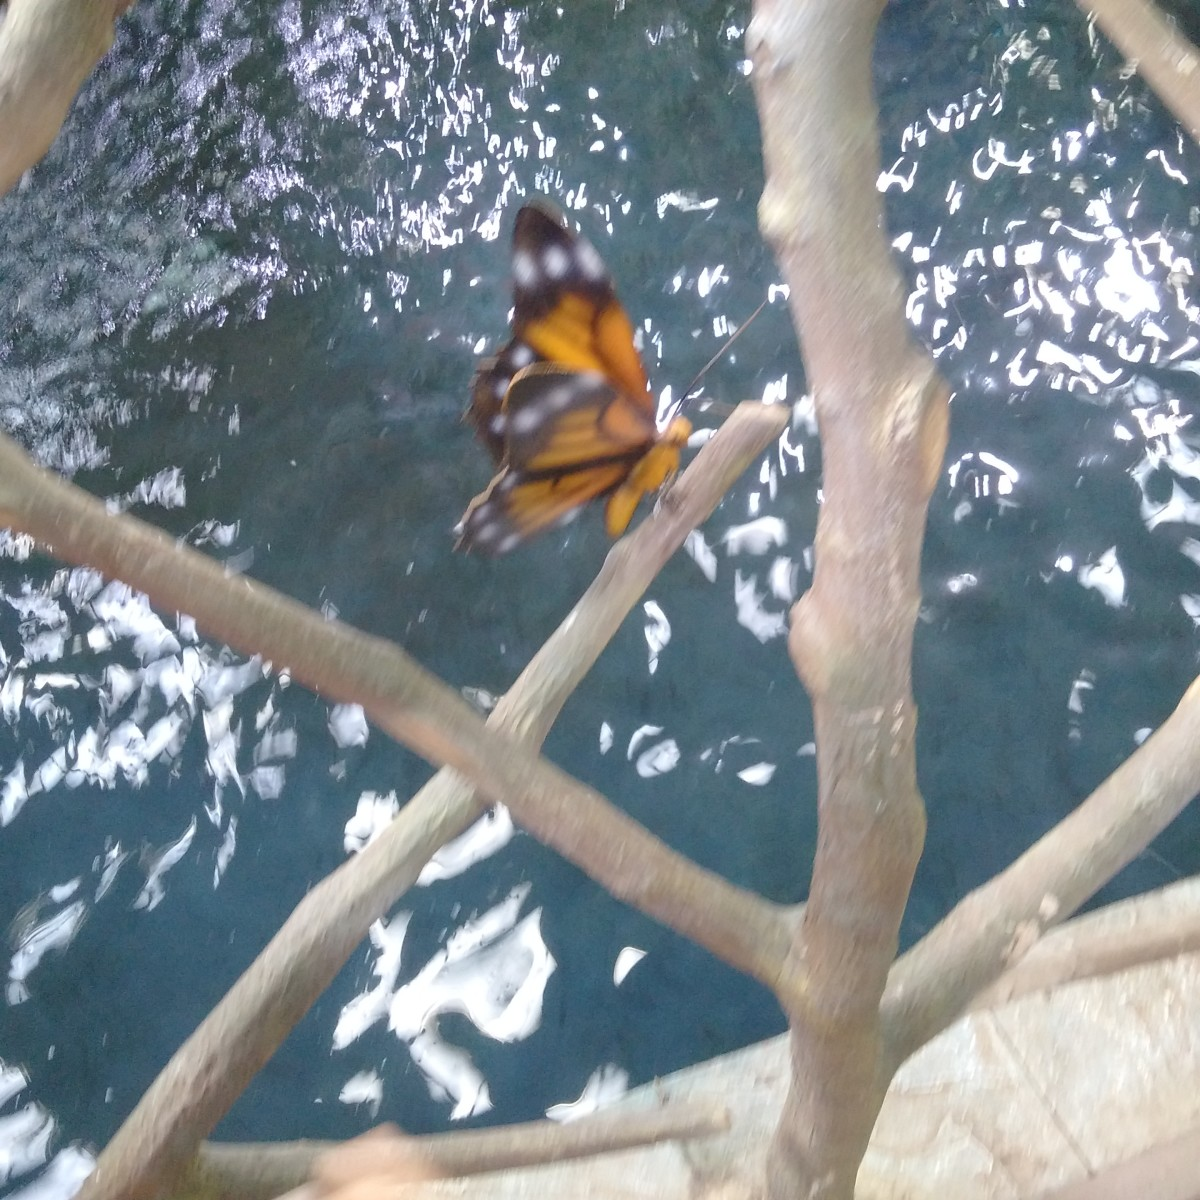 The Butterfly Park in Dubai: Just Like a Dream